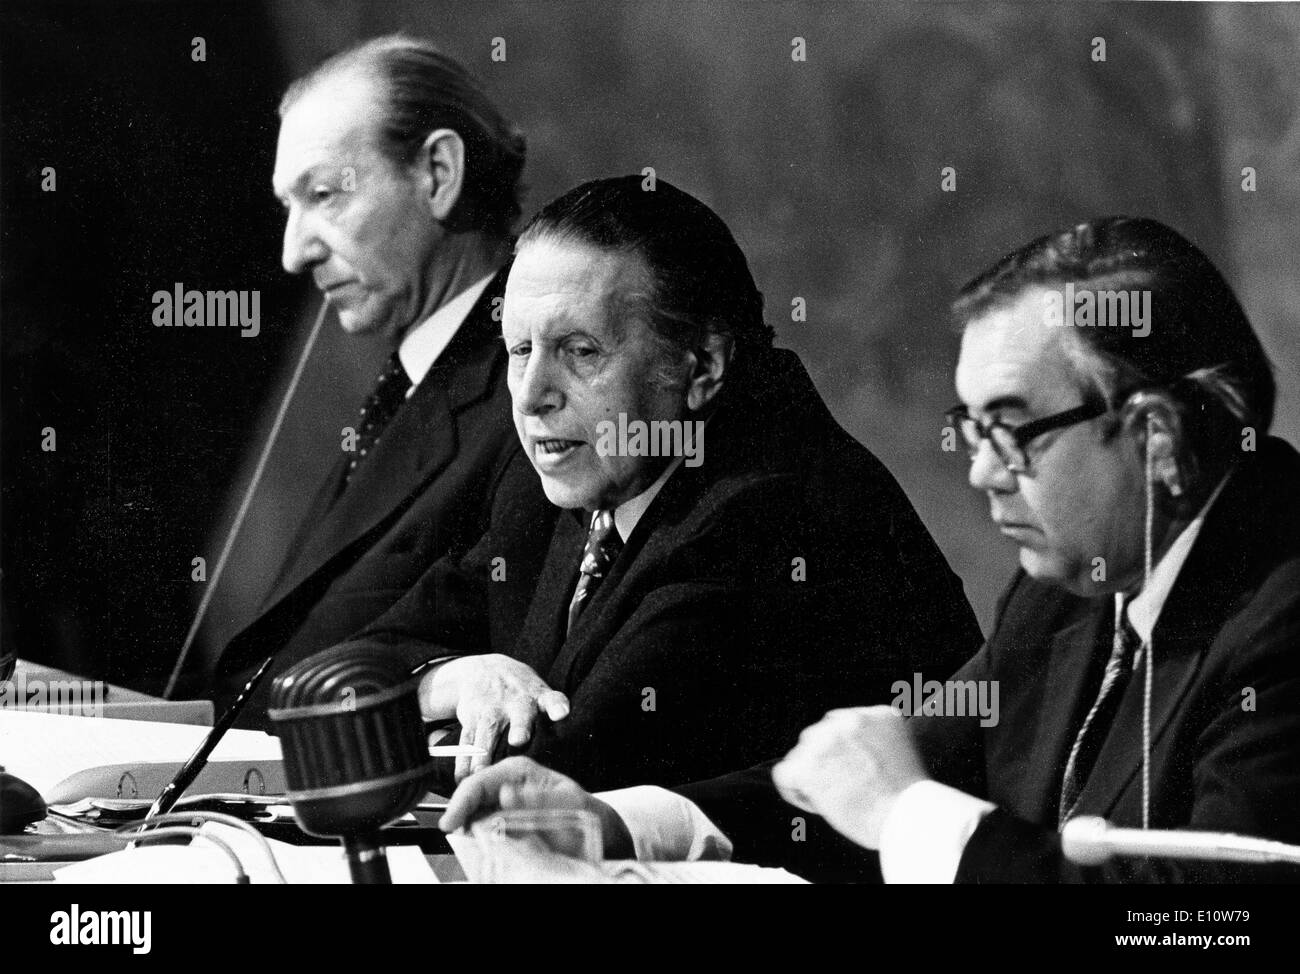 President UN LEOPOLDO BENITES addressing the General Assembly to study the problems of raw materials and development Stock Photo